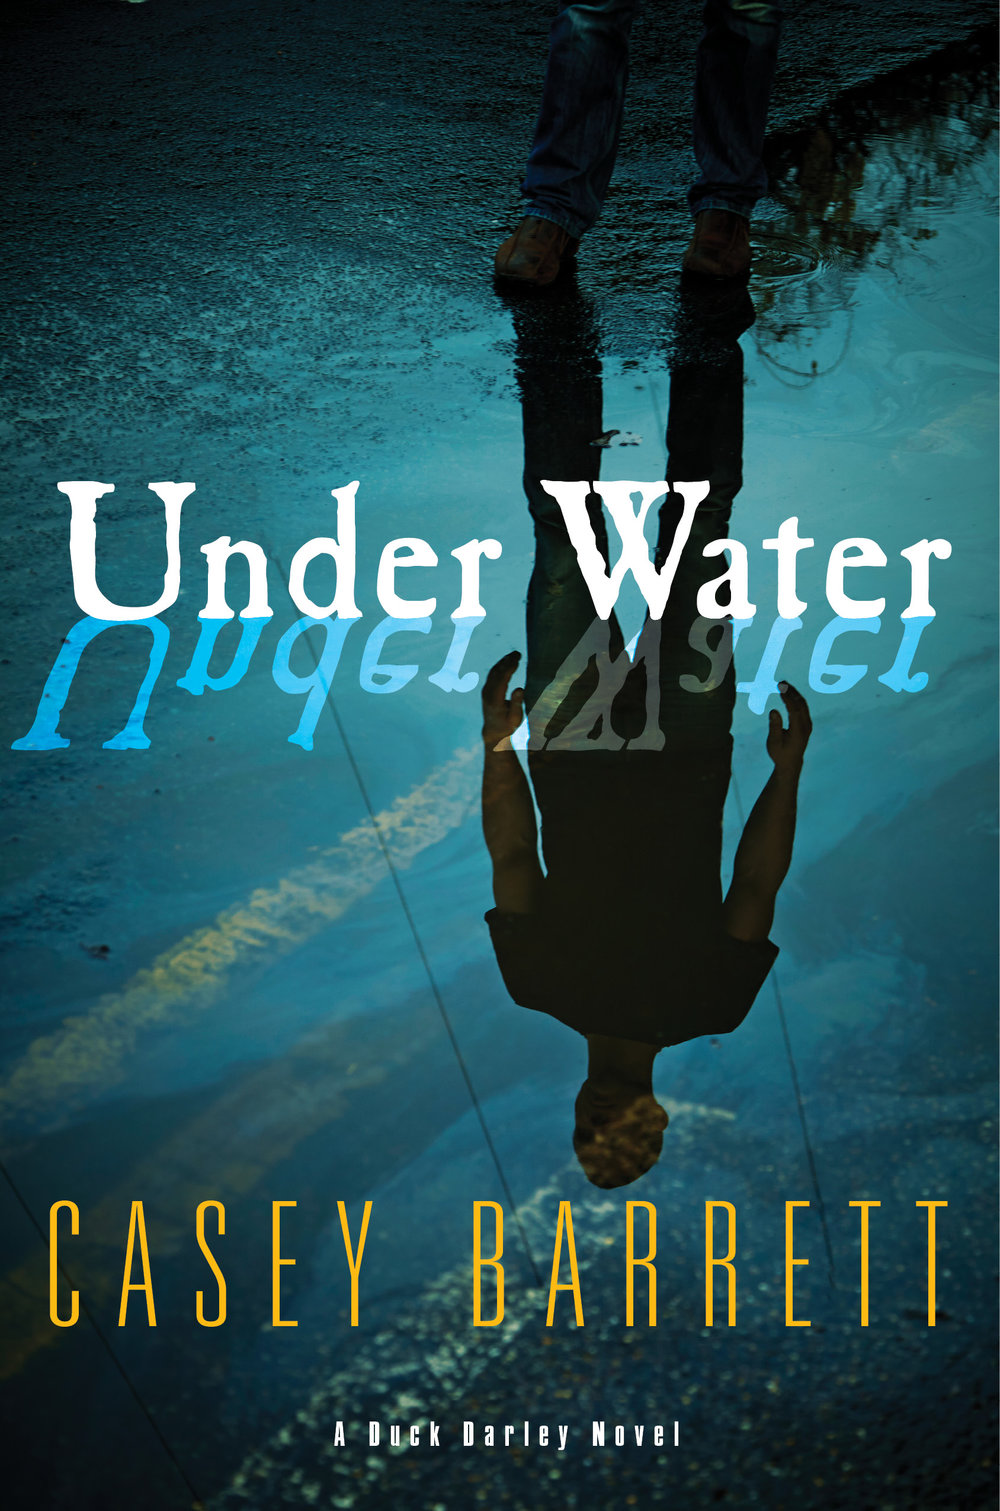 casey barrett, author, duck darley, swimmer, new york city, book